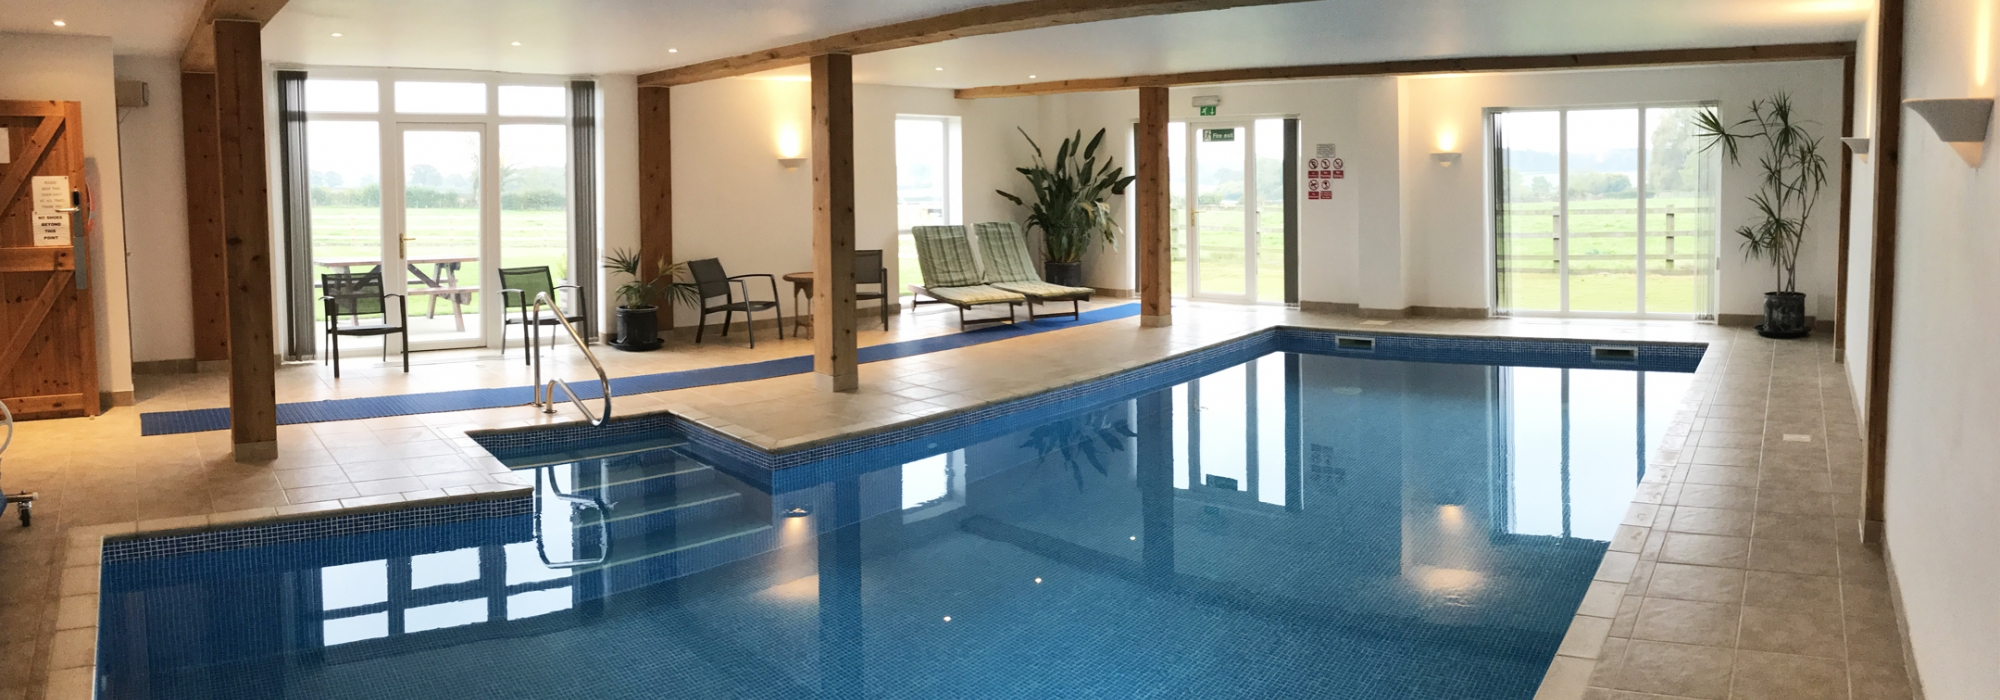 New Indoor Swimming Pool